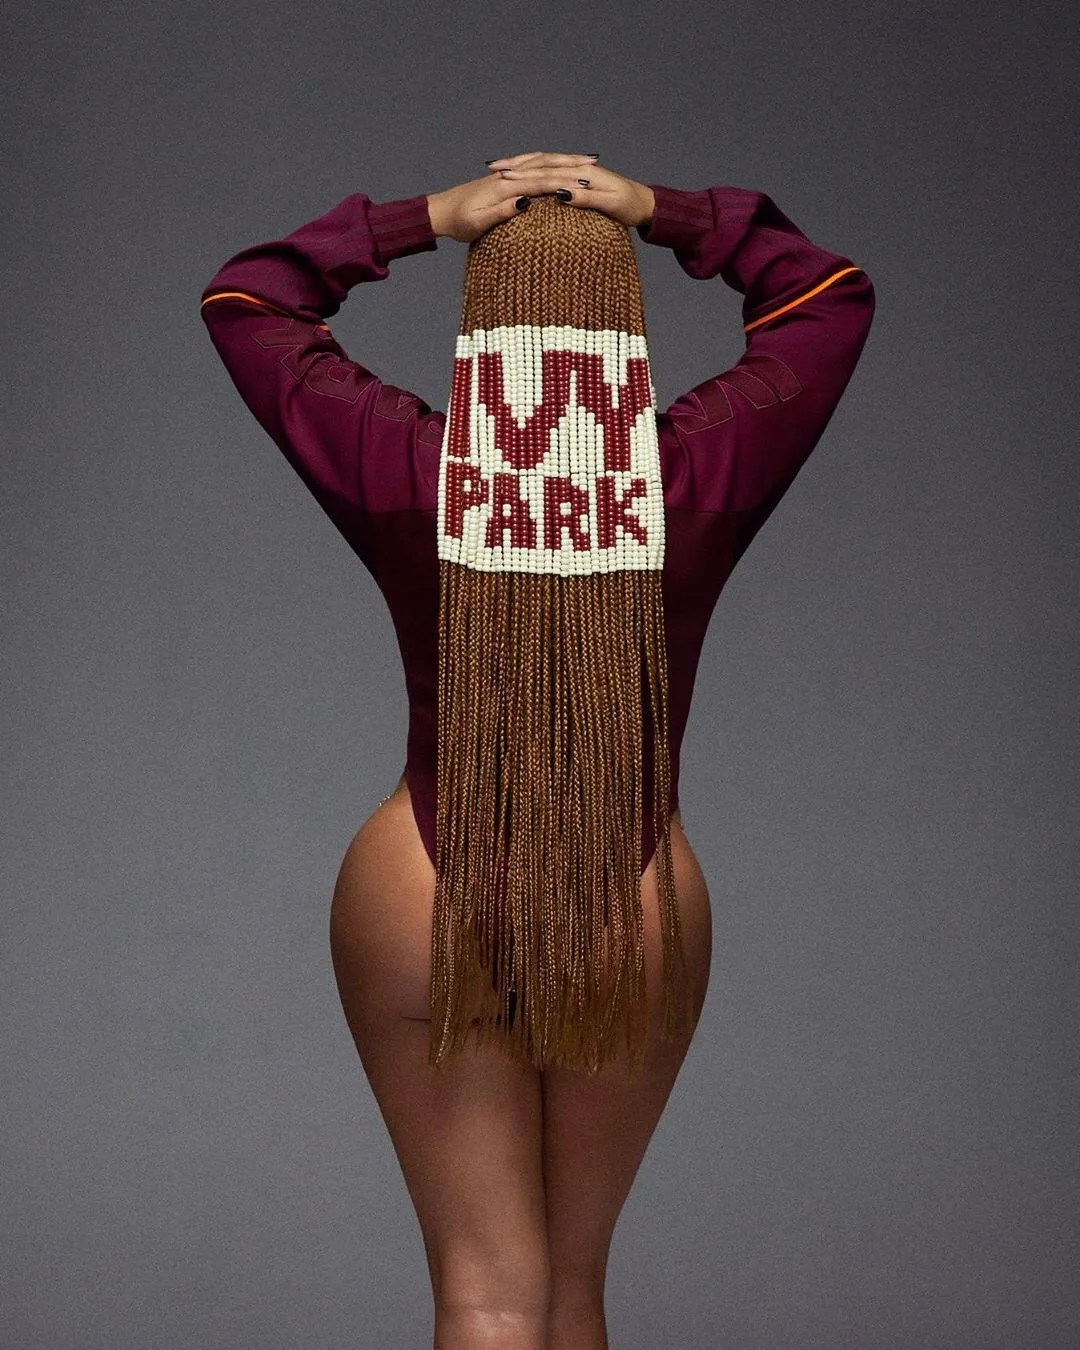 beyonce butt picture melts down the